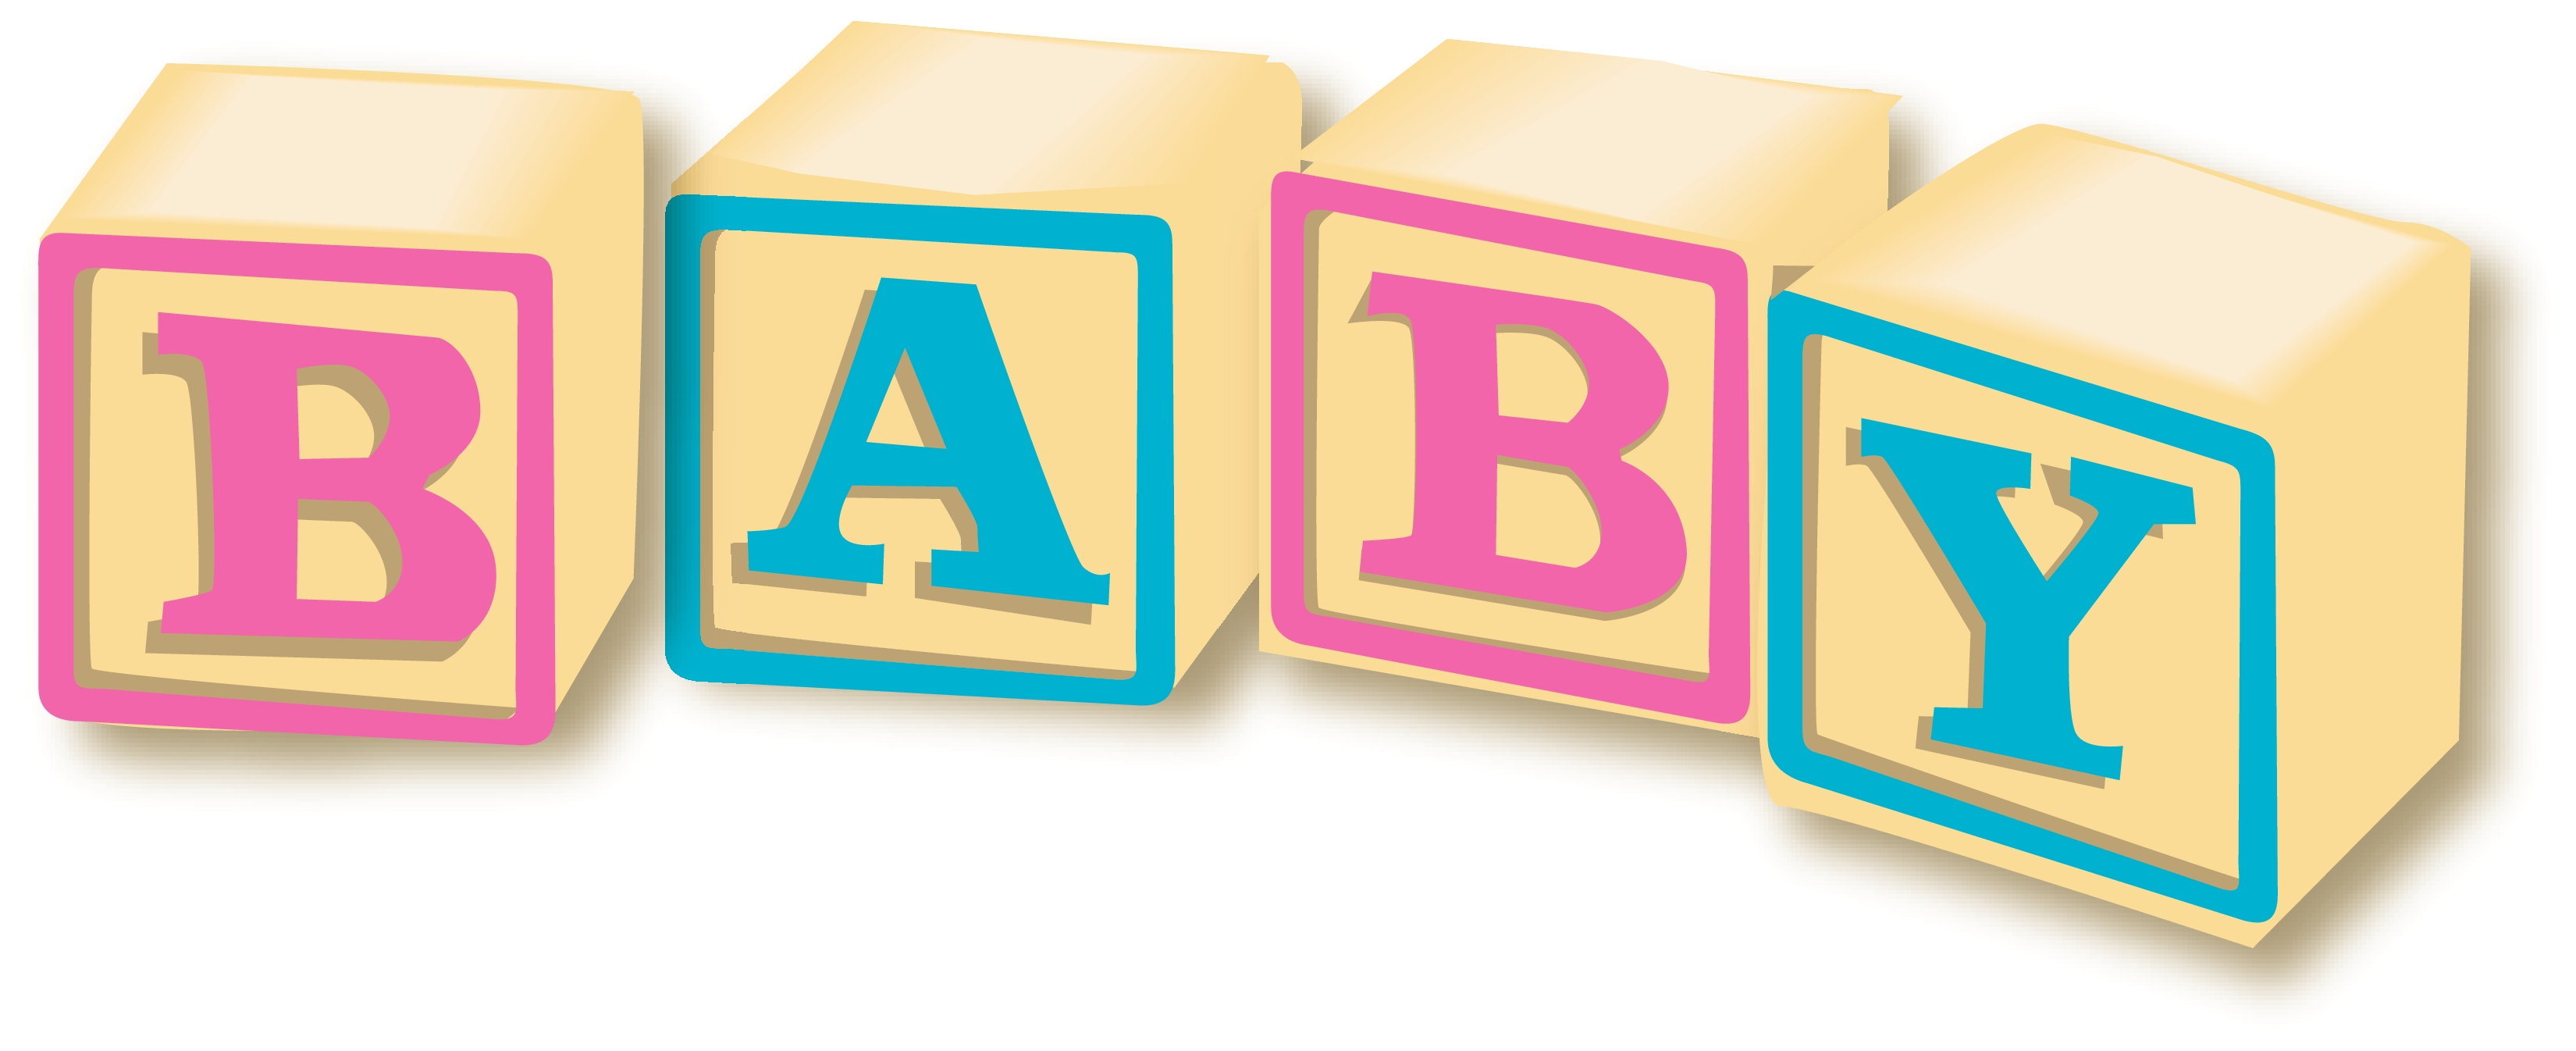 Girl Baby Blocks Clipart - Clipart Suggest